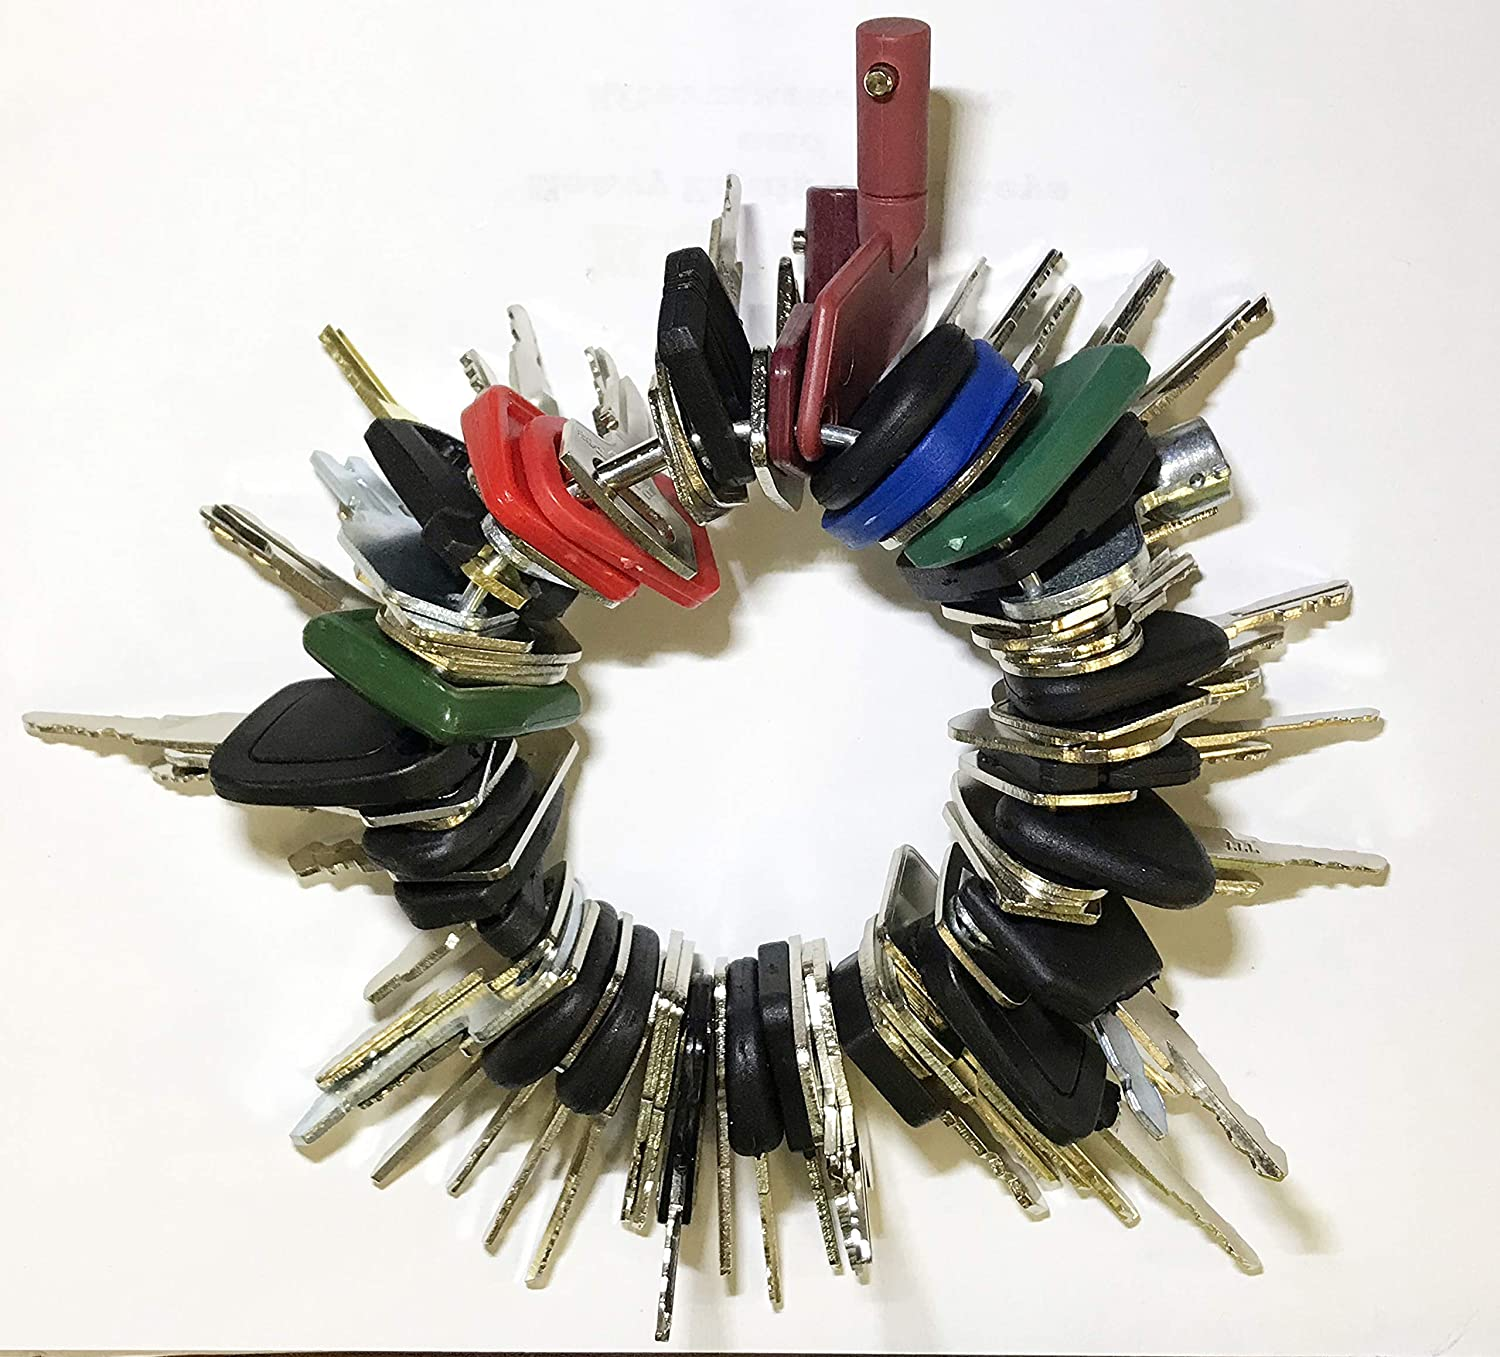 Keyman 70 Keys Heavy Equipment 70 Key Set/Construction Ignition Keys Set